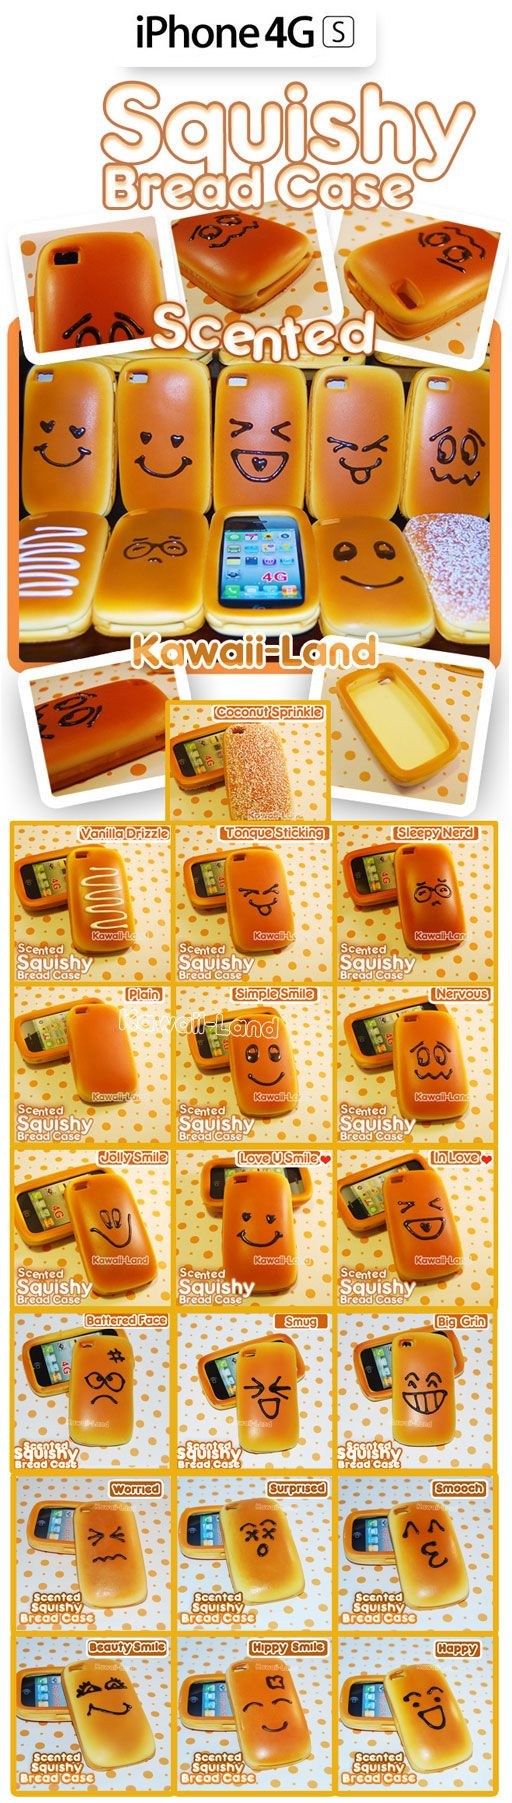 Squishy Bread iPhone Case...smells and feels like bread!